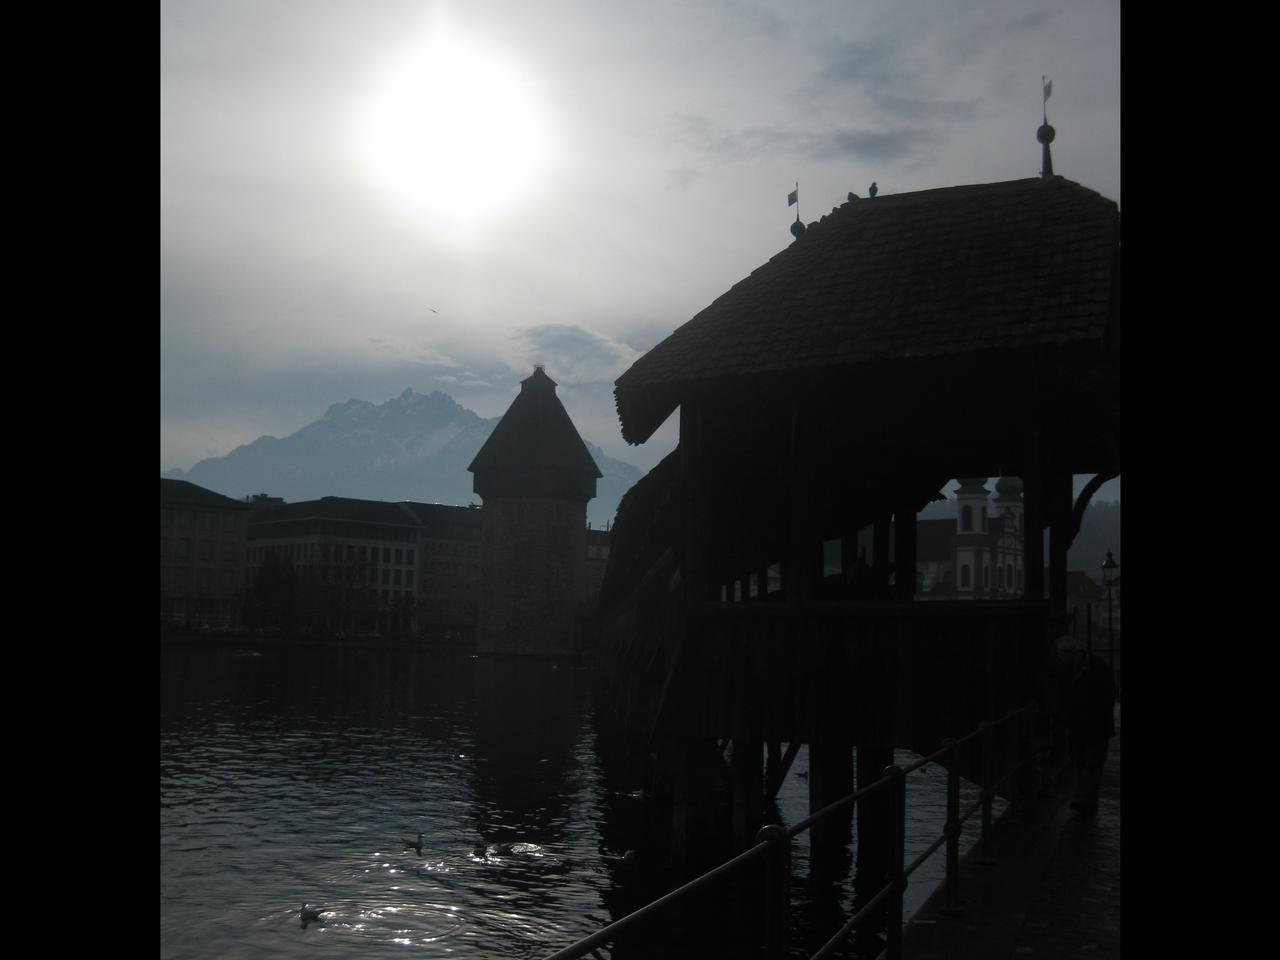 ../galleries/Luzern/IMG_5414.JPG